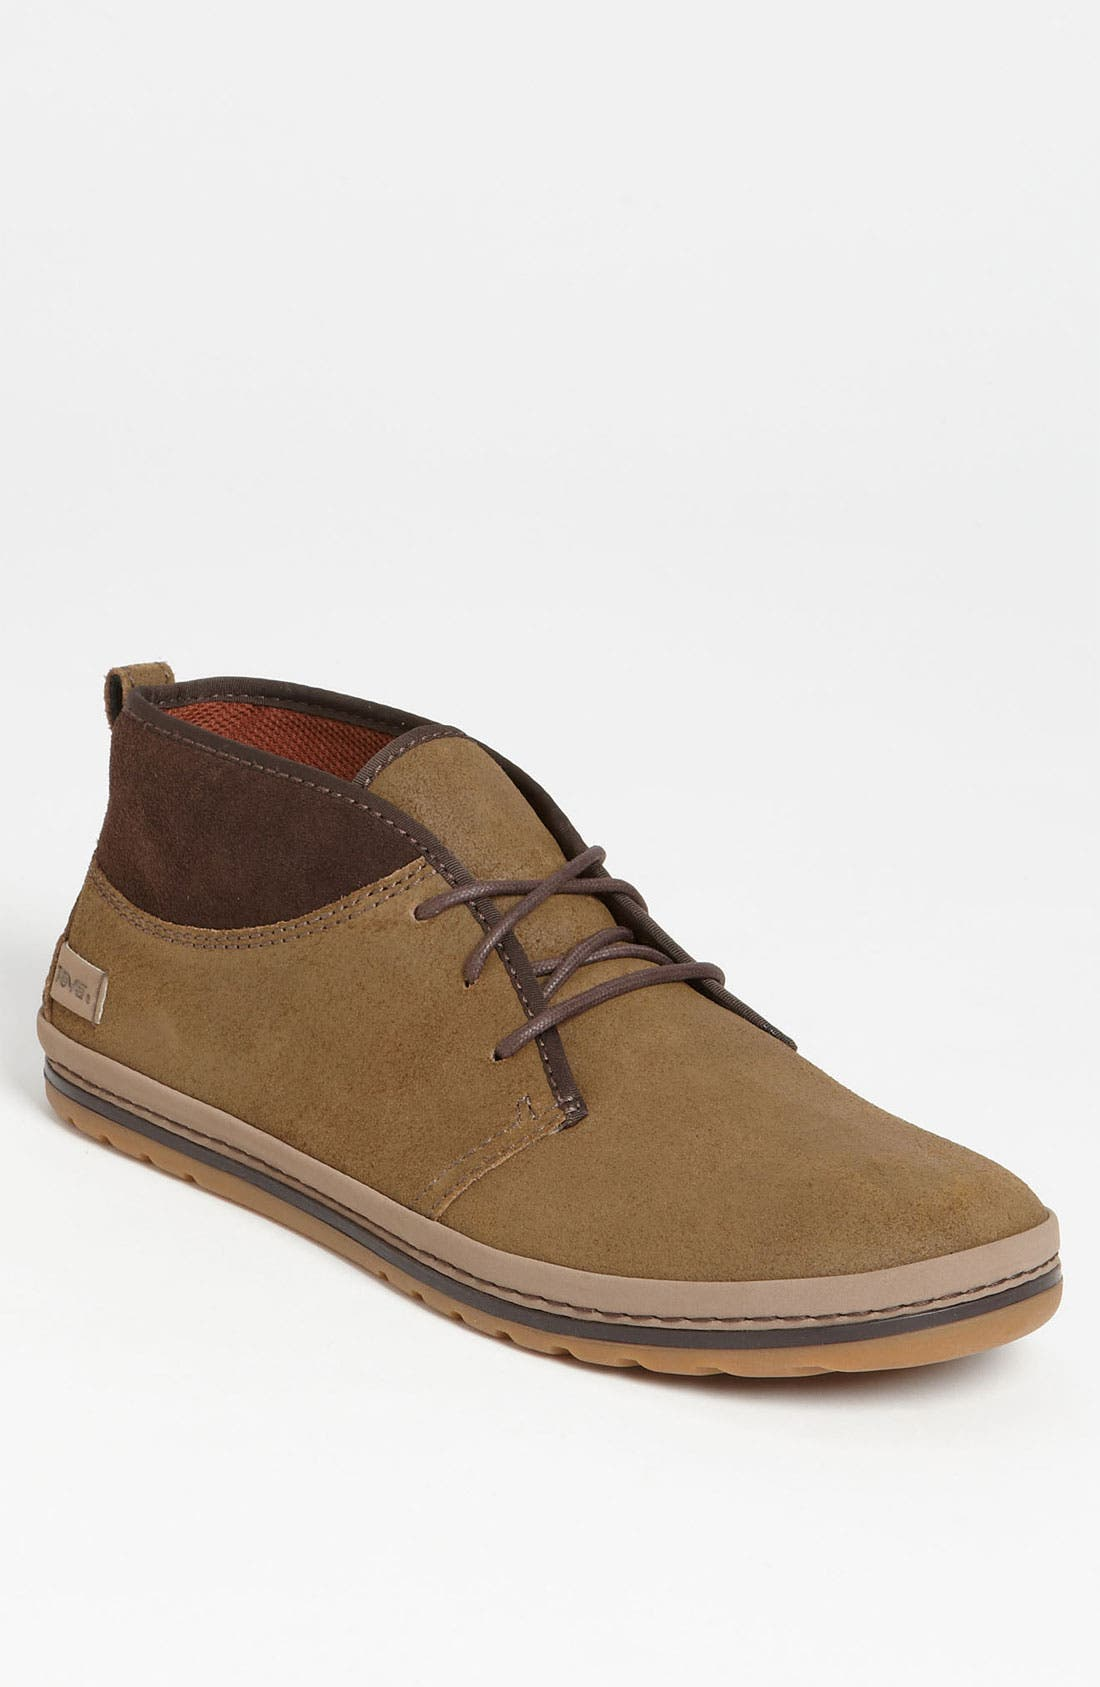 Alternate Image 1 Selected - Teva 'Cedar Canyon' Chukka Boot (Online Only)